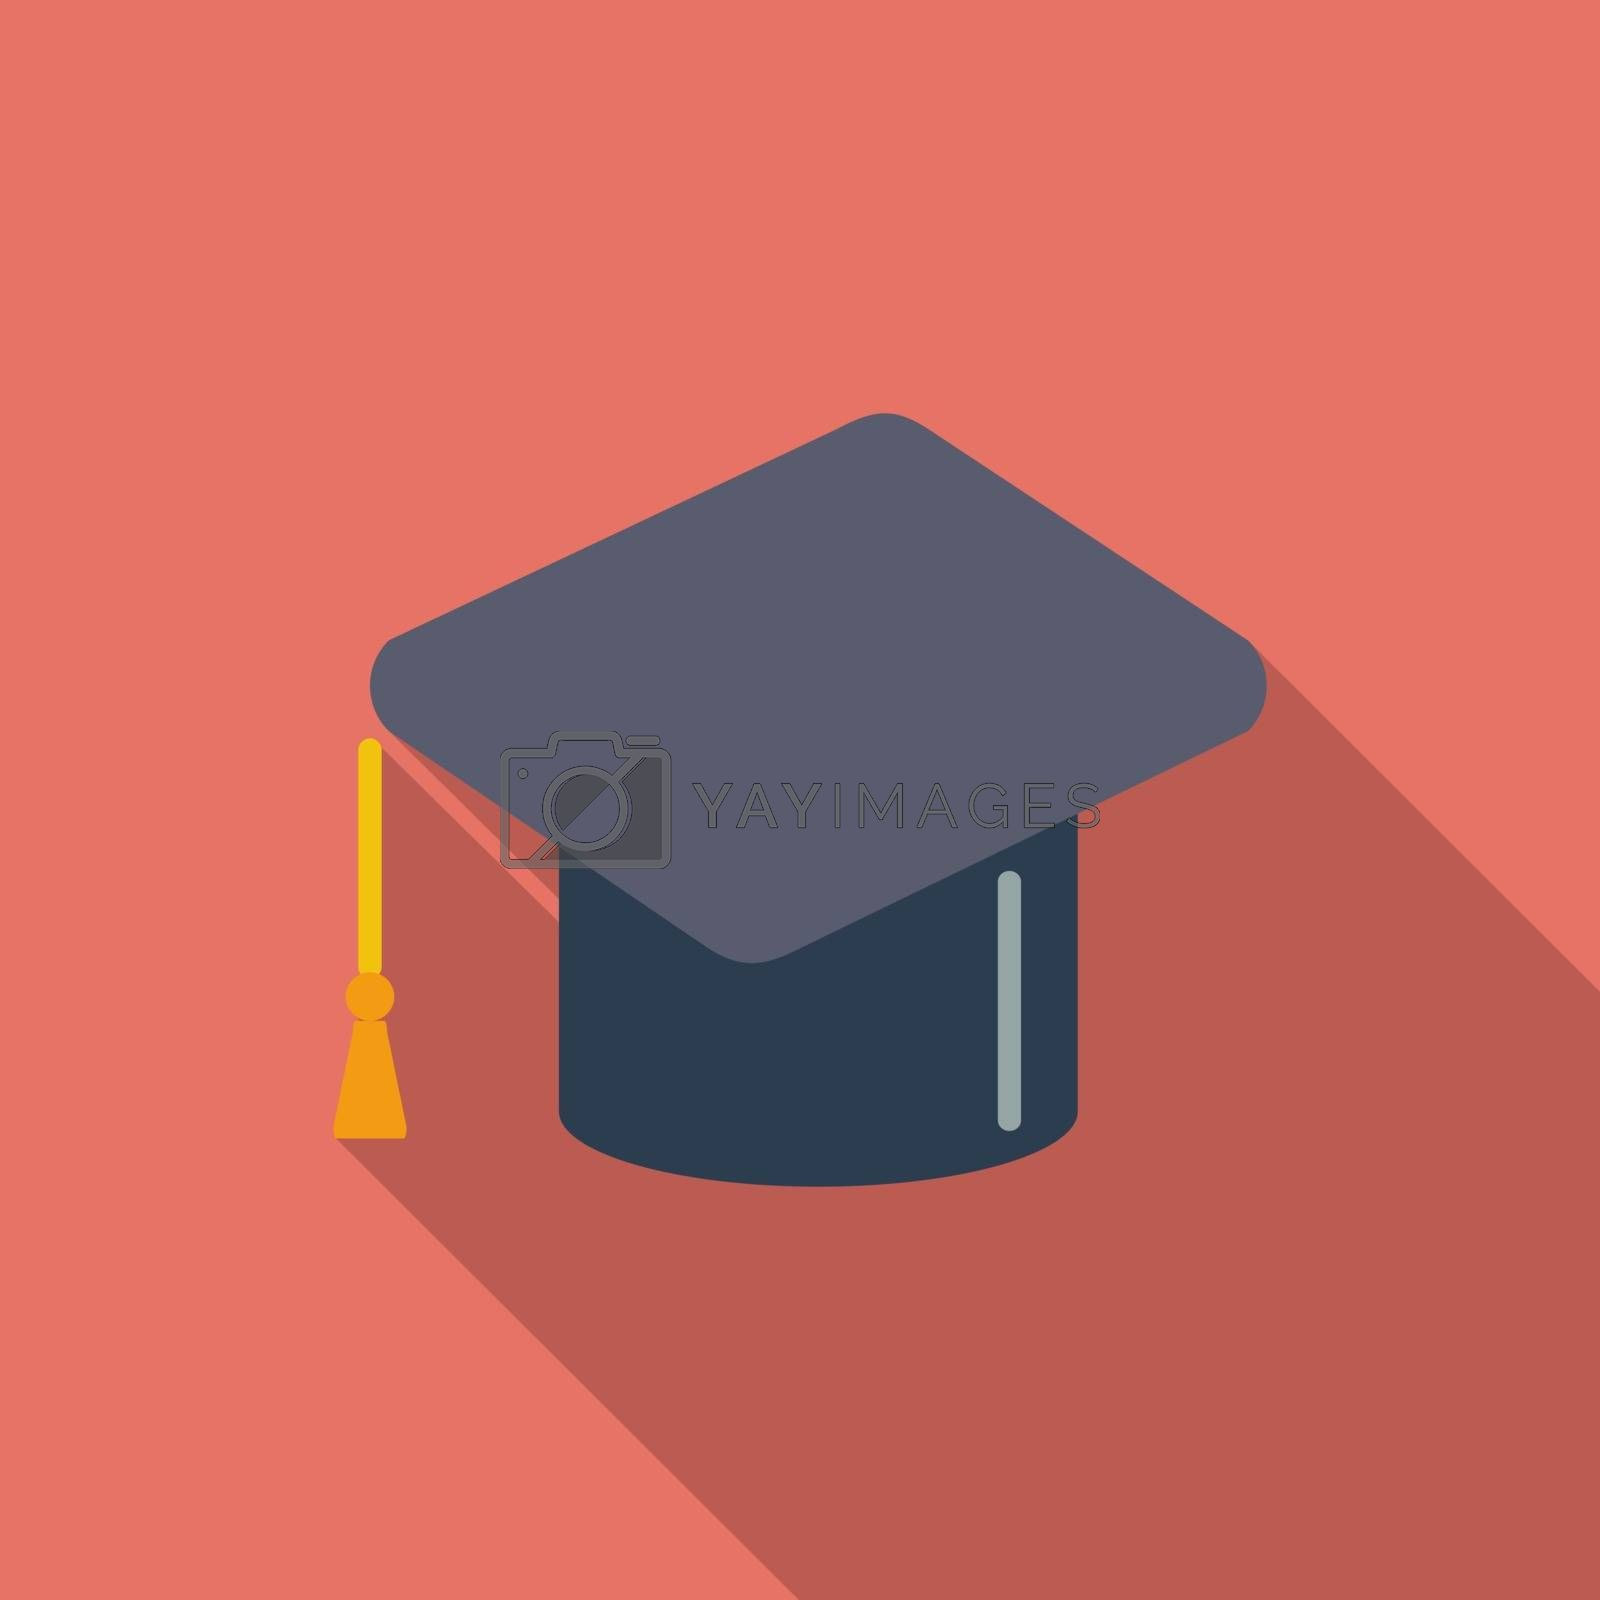 Education icon. Flat vector related icon with long shadow for web and mobile applications. It can be used as - logo, pictogram, icon, infographic element. Vector Illustration.v